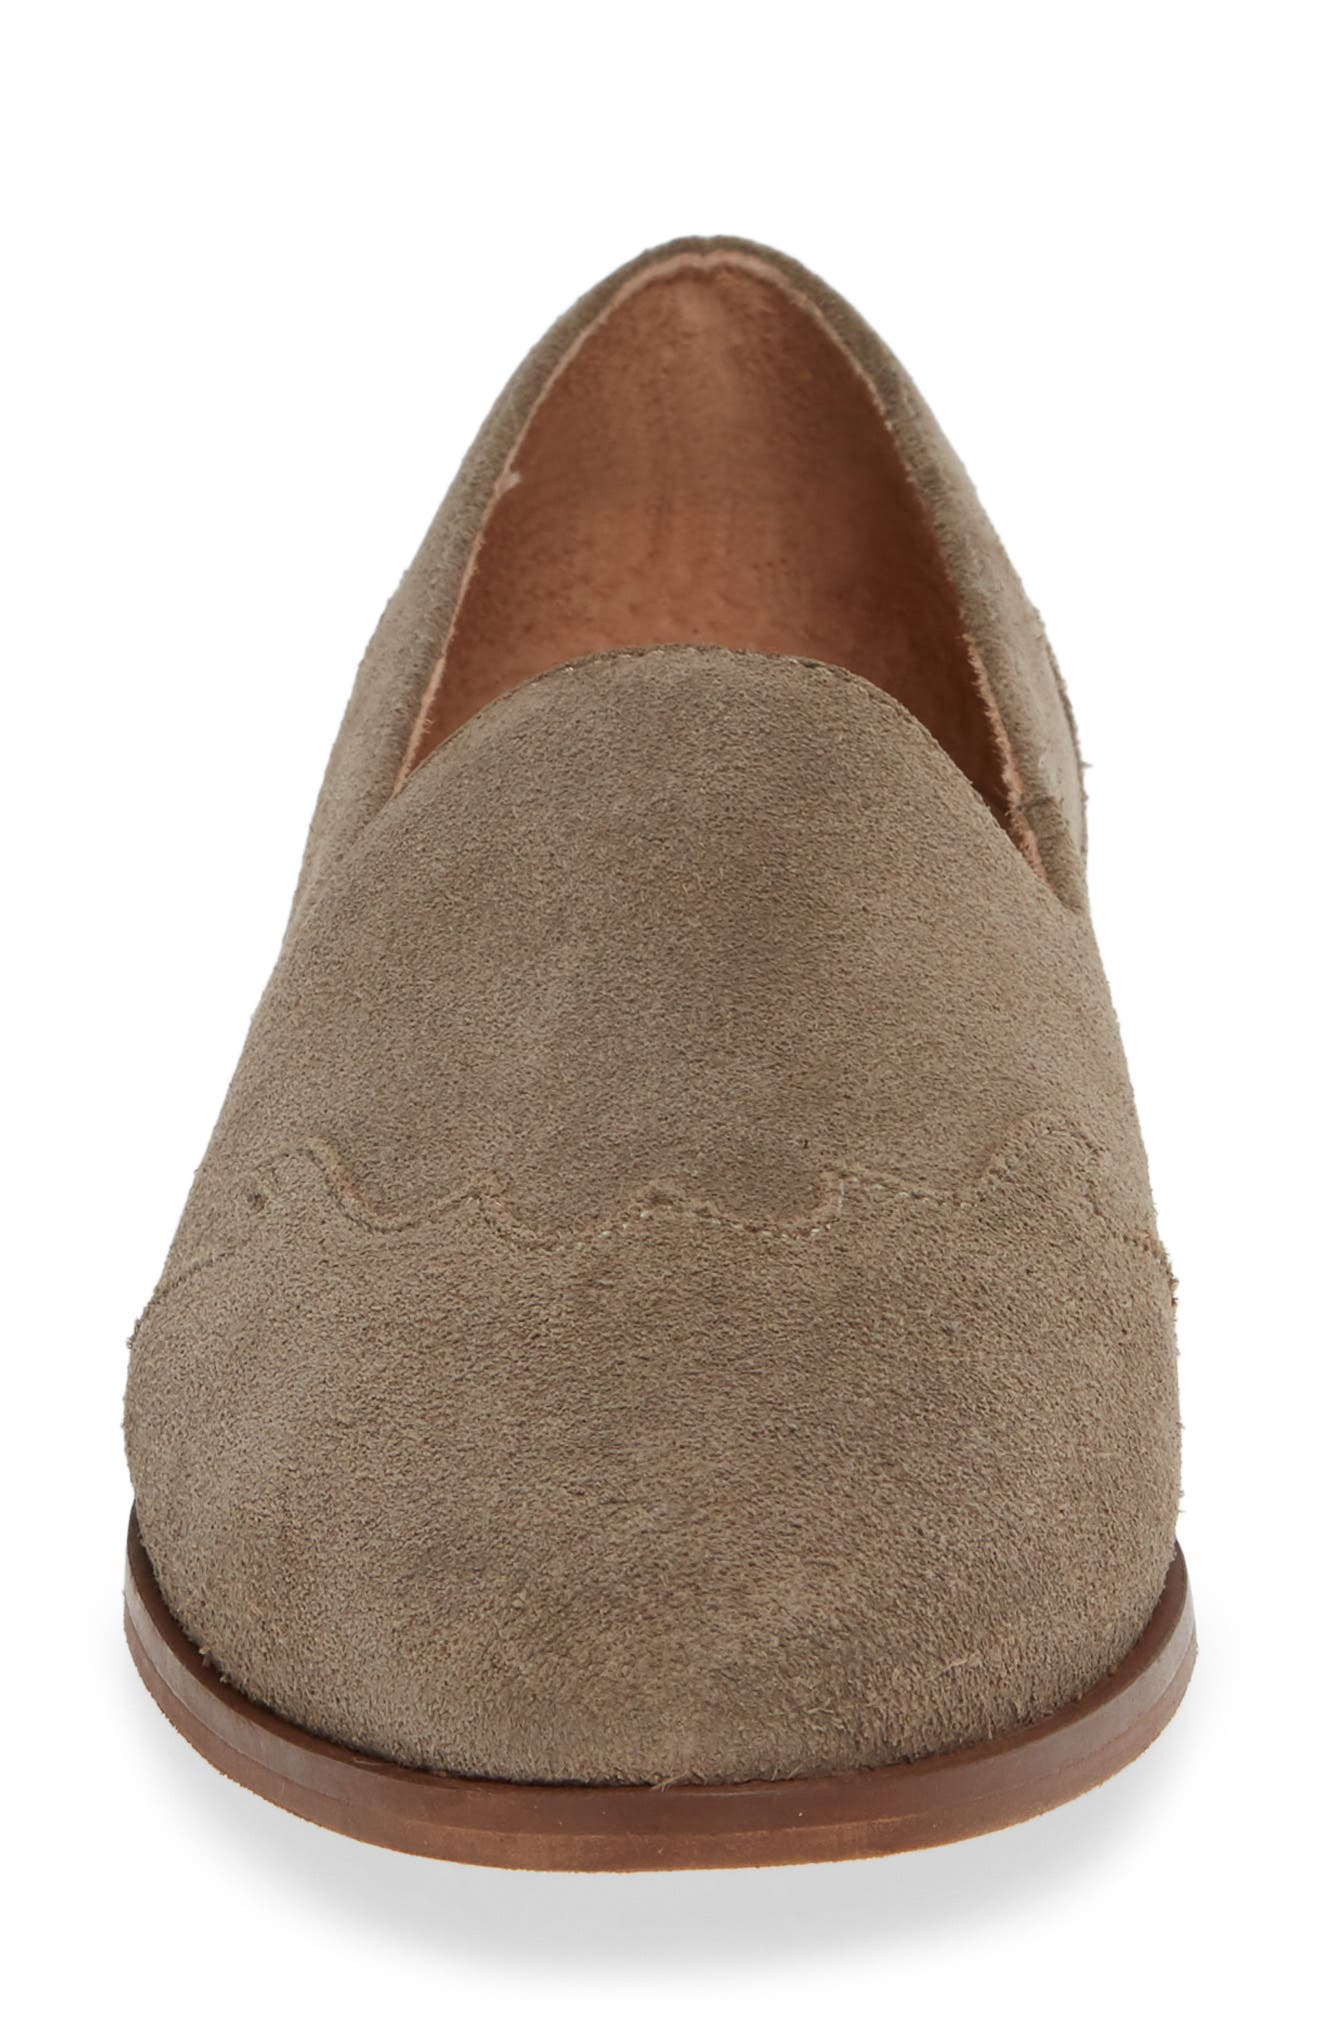 Revolution Loafer,                             Alternate thumbnail 4, color,                             TAUPE SUEDE